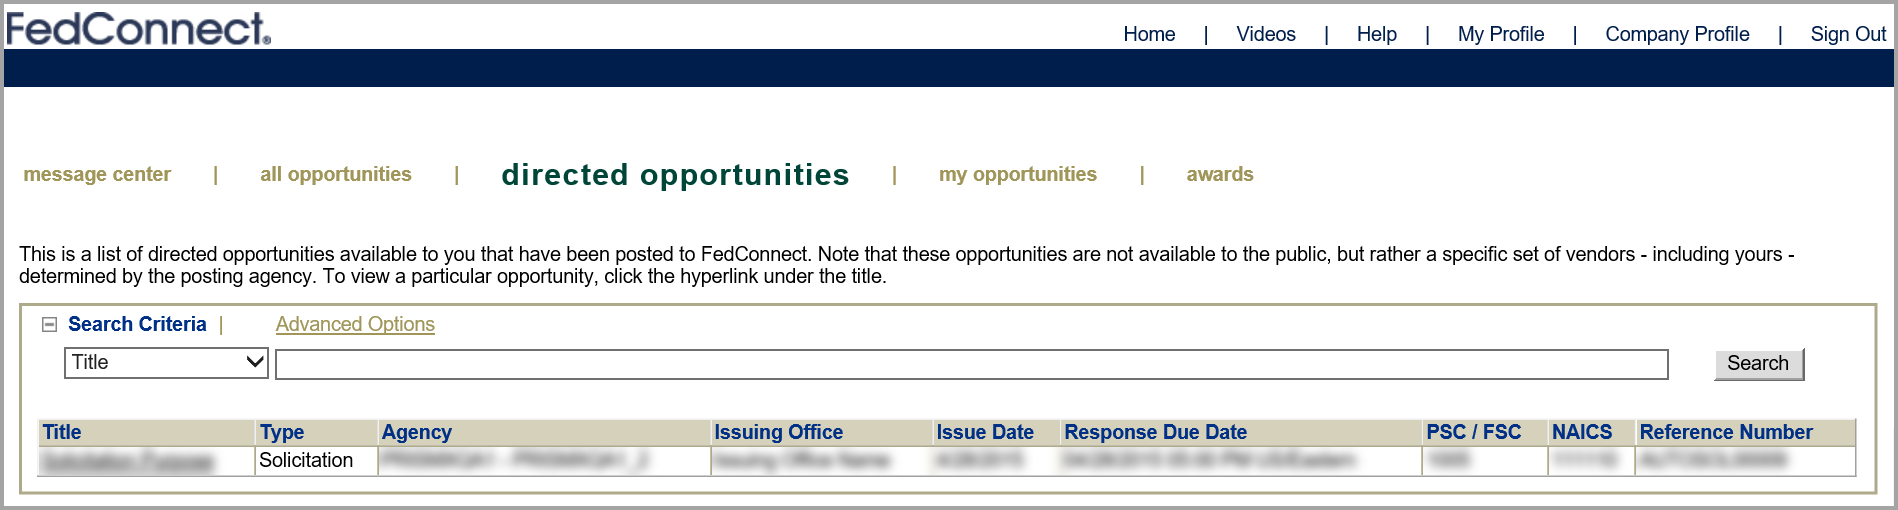 Picture of the Directed Opportunities page in FedConnect